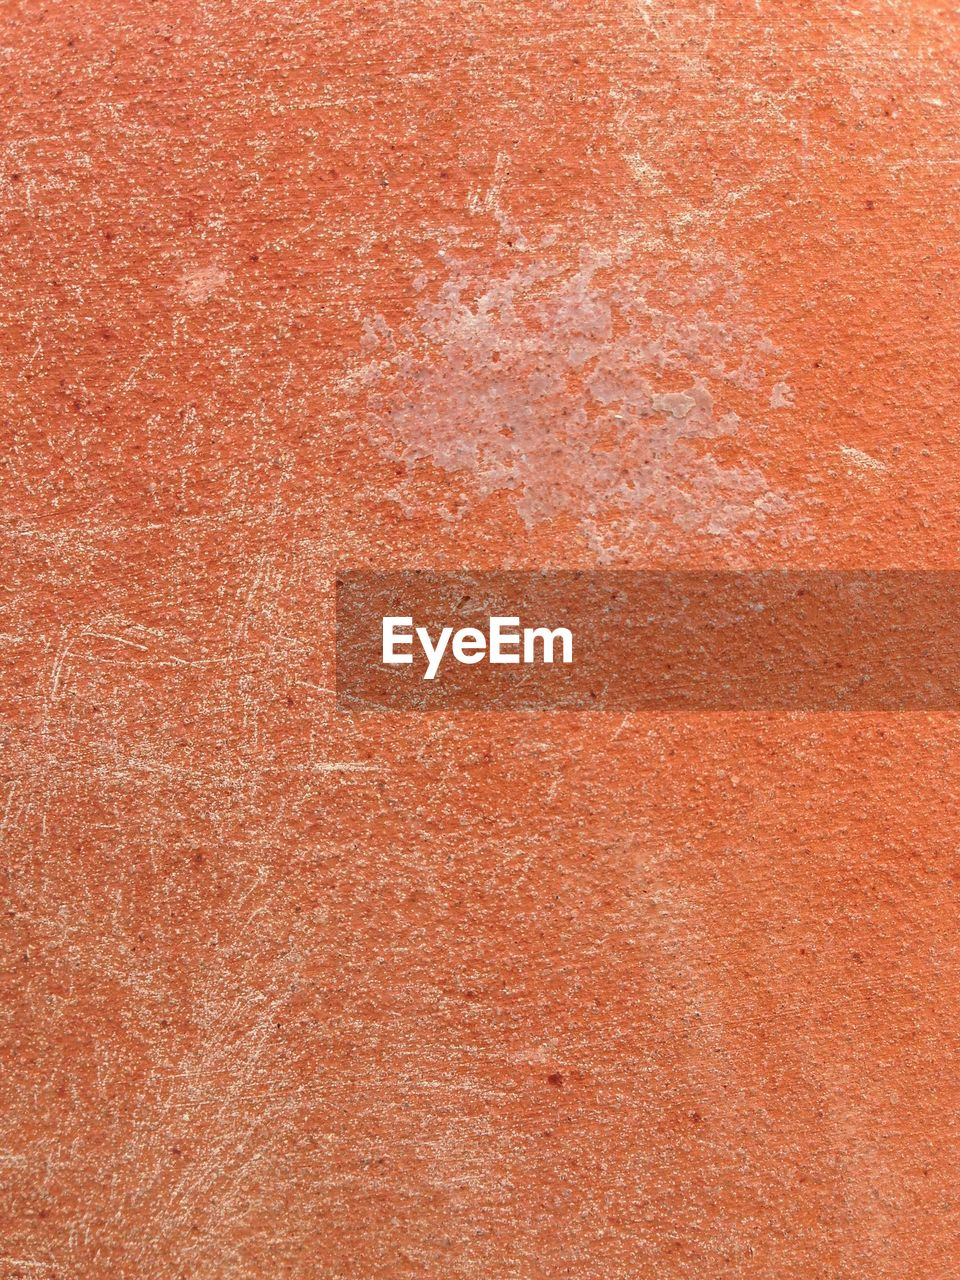 backgrounds, full frame, textured, no people, pattern, abstract, close-up, built structure, orange color, red, copy space, architecture, brown, wall - building feature, nature, abstract backgrounds, textured effect, material, outdoors, marbled effect, blank